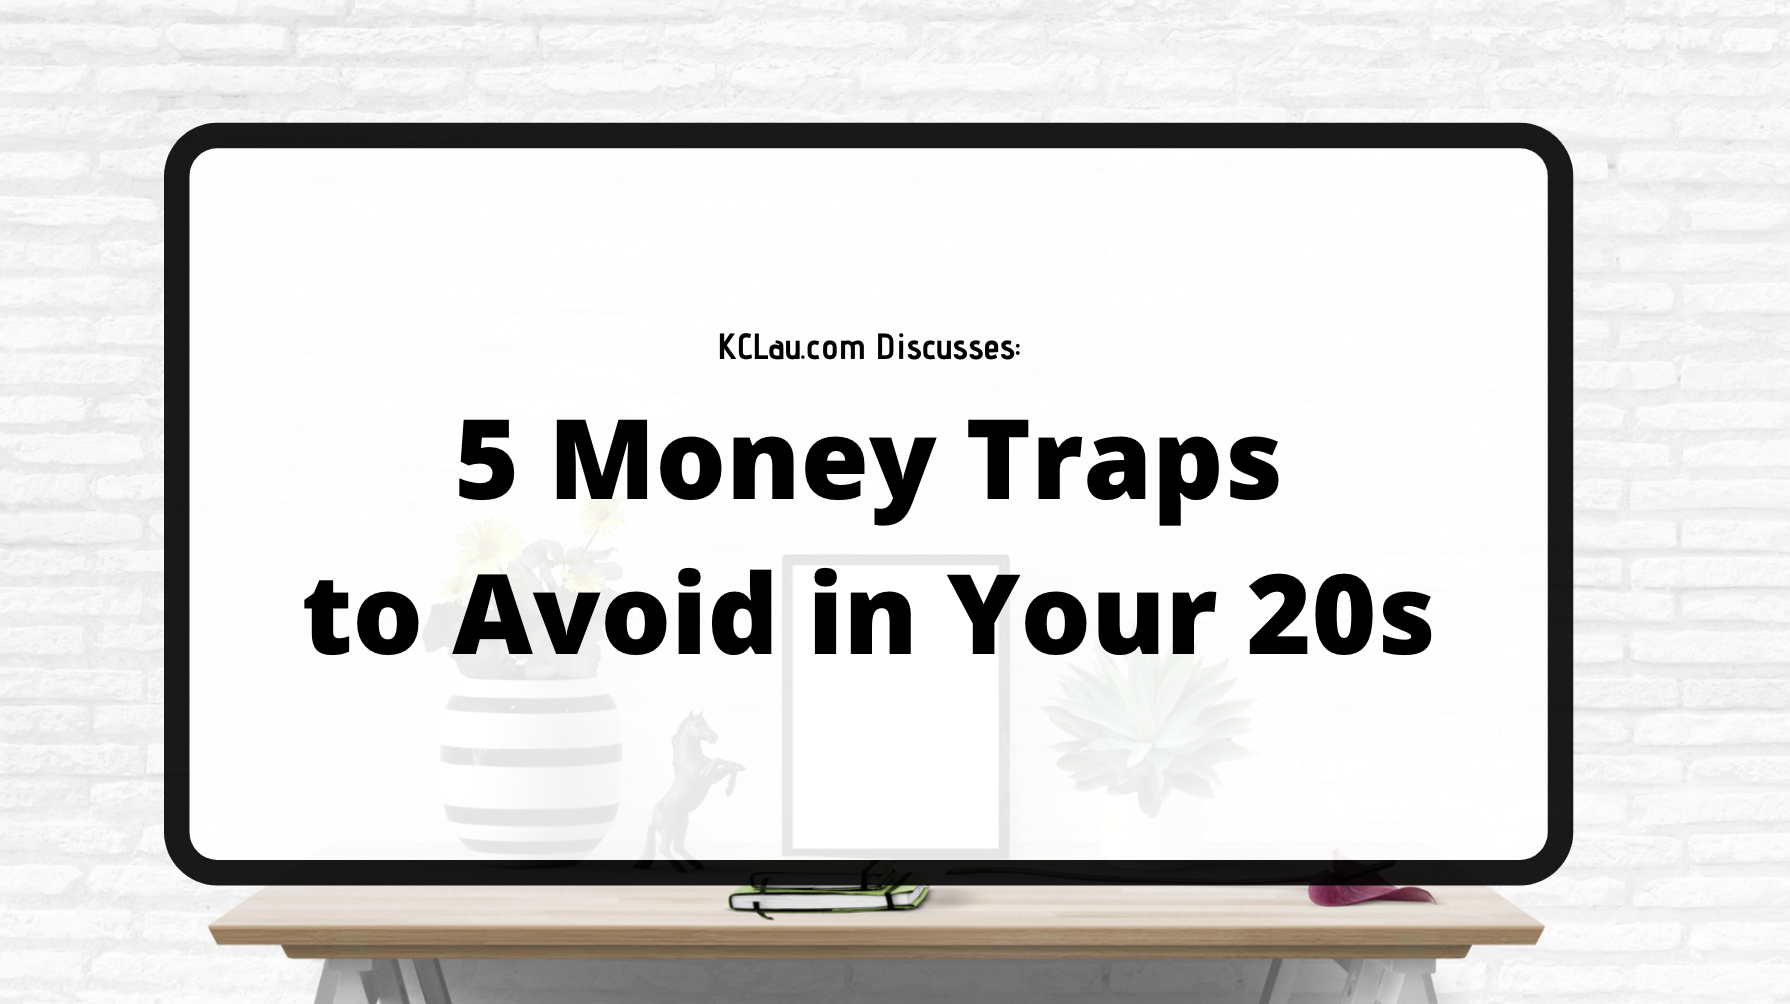 5 Money Traps to Avoid in Your 20s